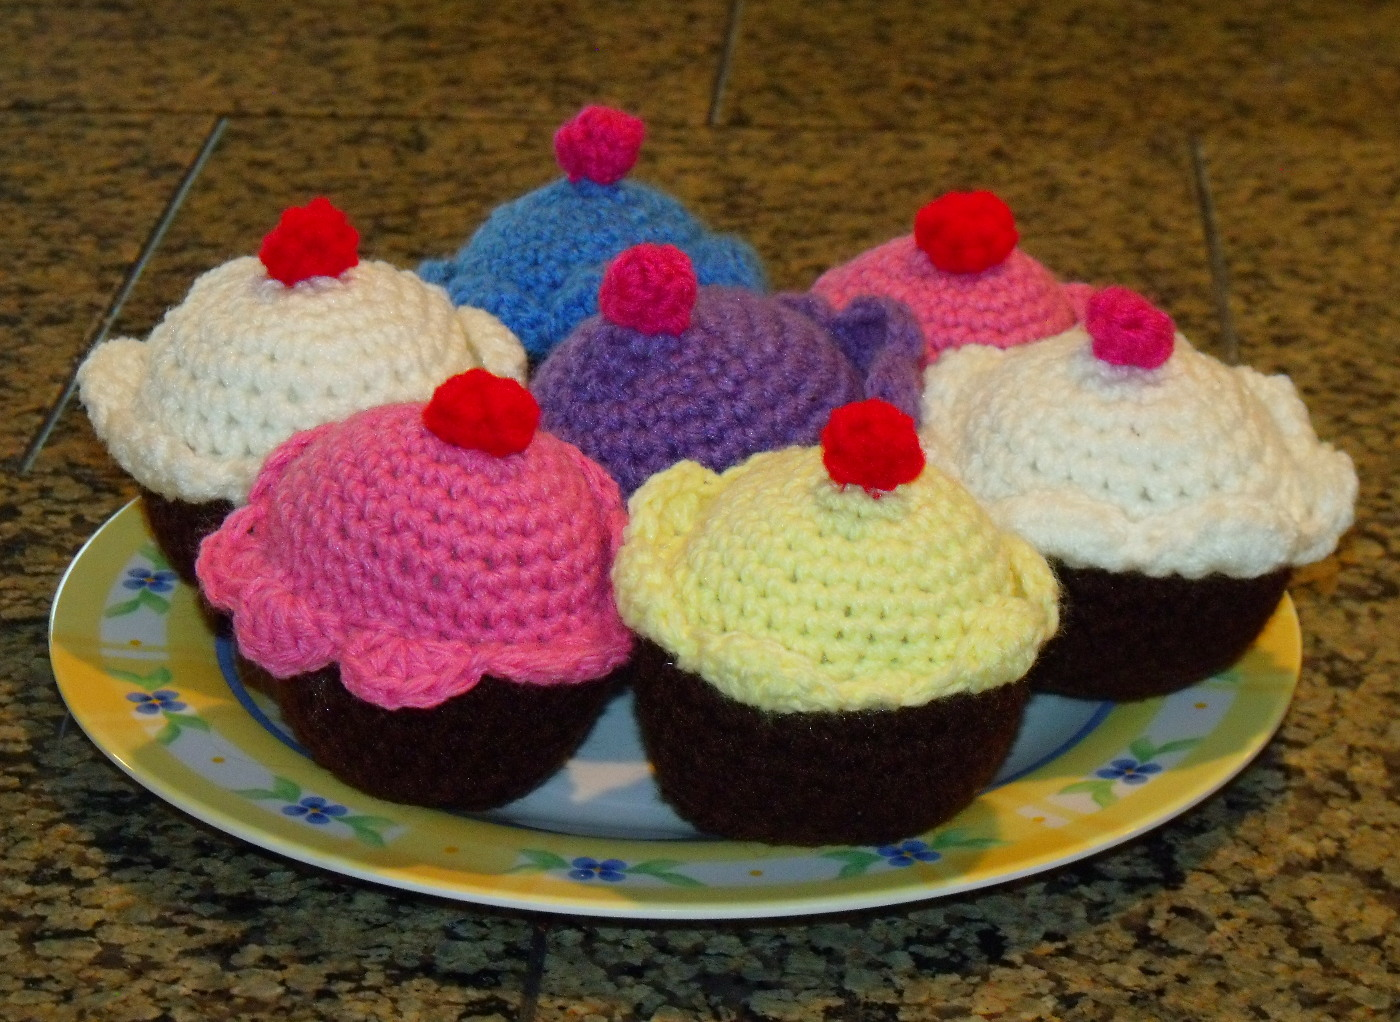 Crochet Pattern Free Cupcake : Easy Crochet Cupcake Pattern Free Squidoo Auto Design Tech